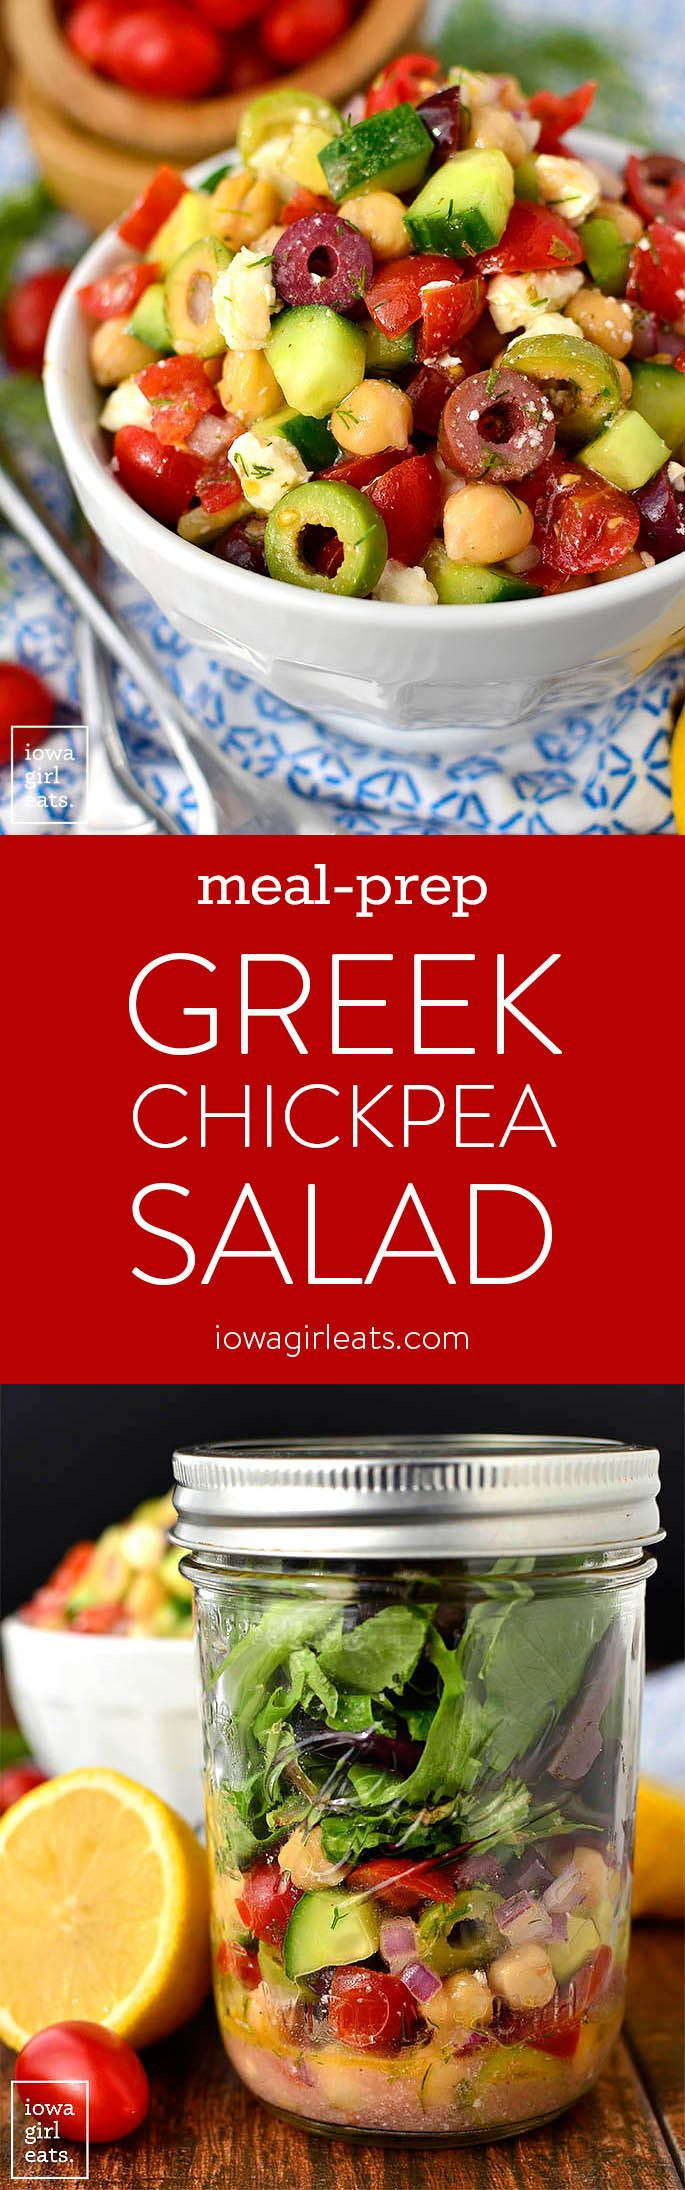 Meal Prep Greek Chickpea Salad is a fresh and filling lunch idea! Make a big batch then divy into mason jars with lettuce for easy, on-the-gogluten-free lunches all week. | iowagirleats.com #glutenfree